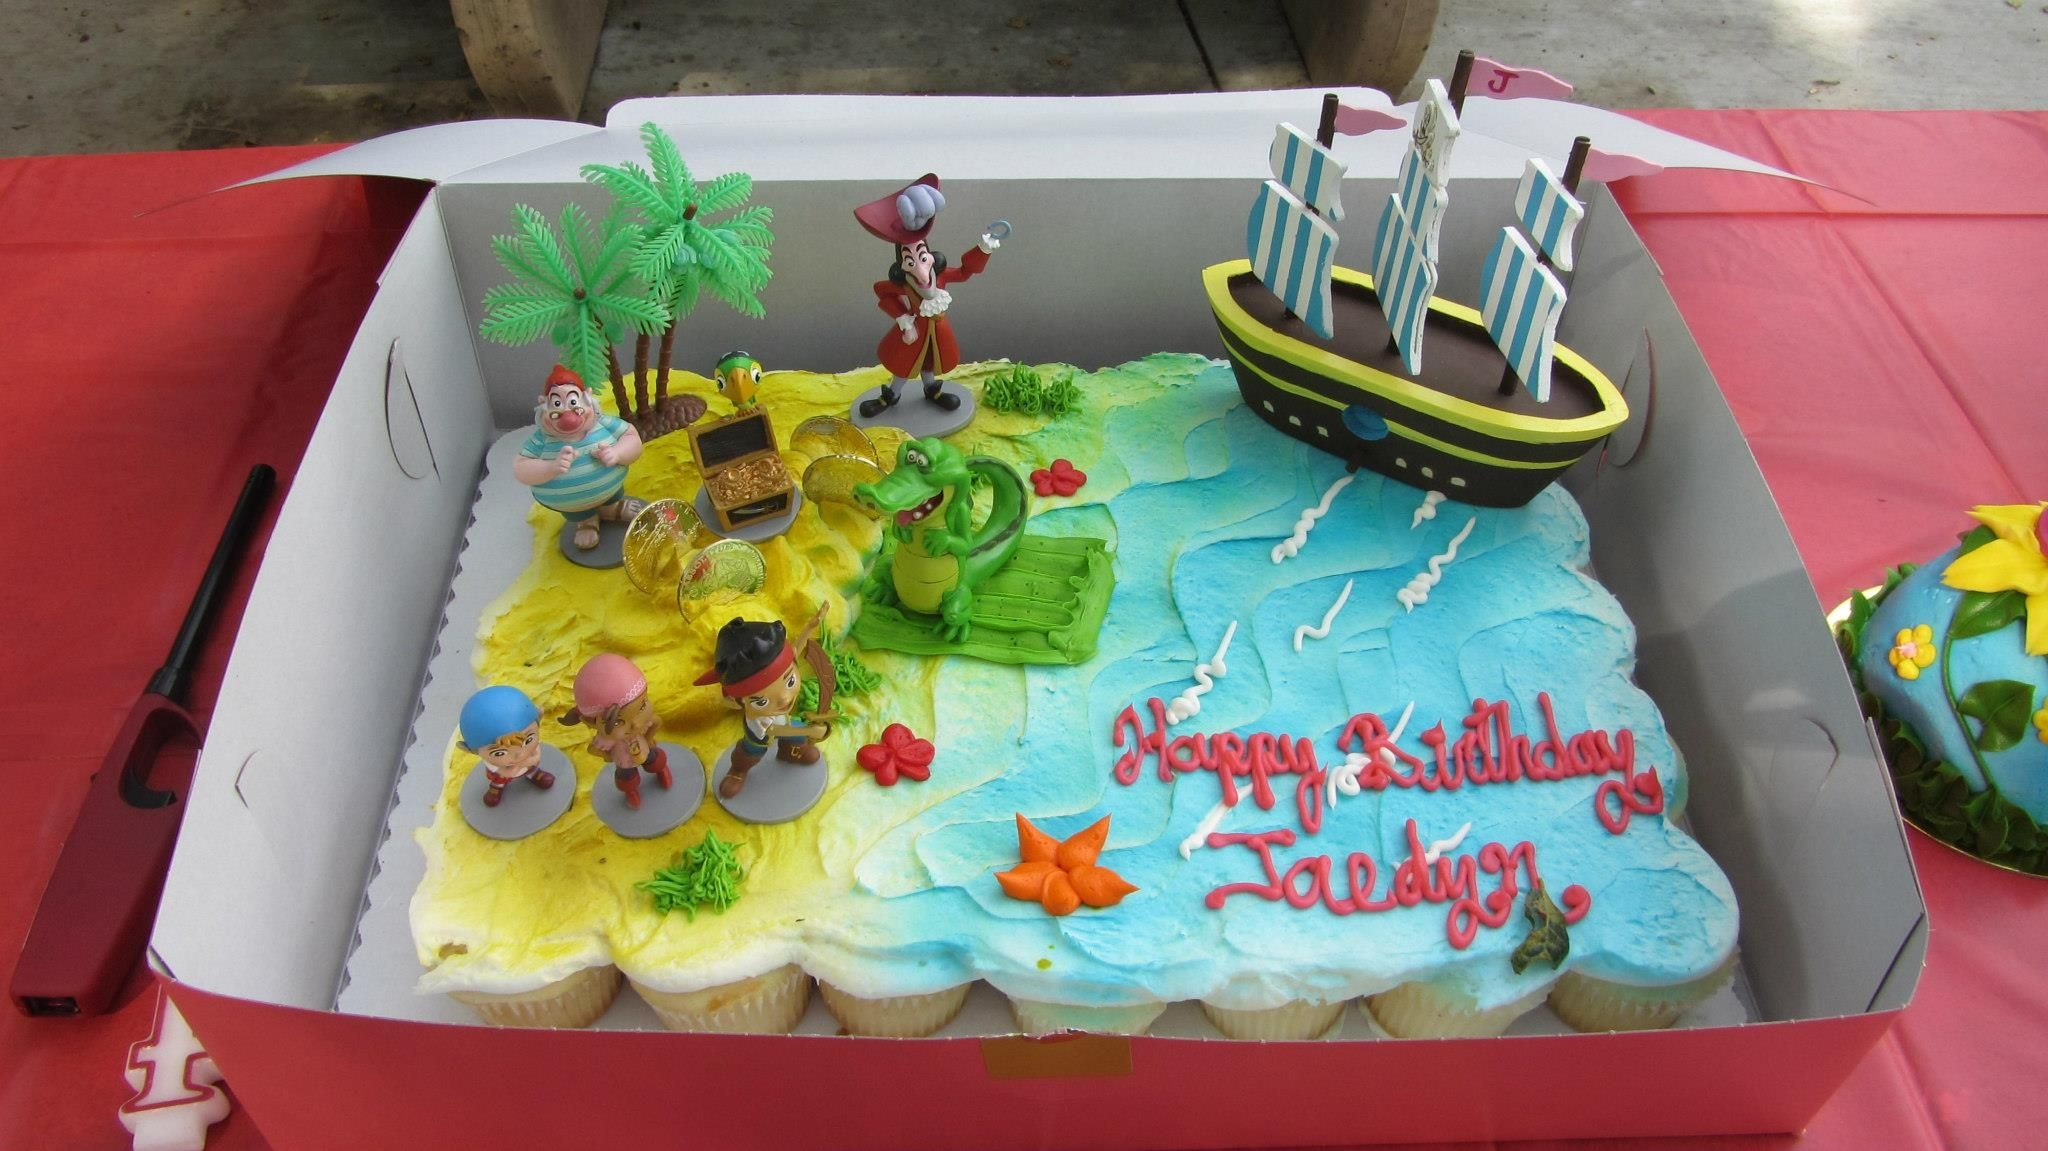 Jake And The Never Land Pirates Themed Cake Cupcake Cake From Safeway And A Collaboration Of Bunch Of T Birthday Cake Kids Boy Birthday Parties Kids Birthday